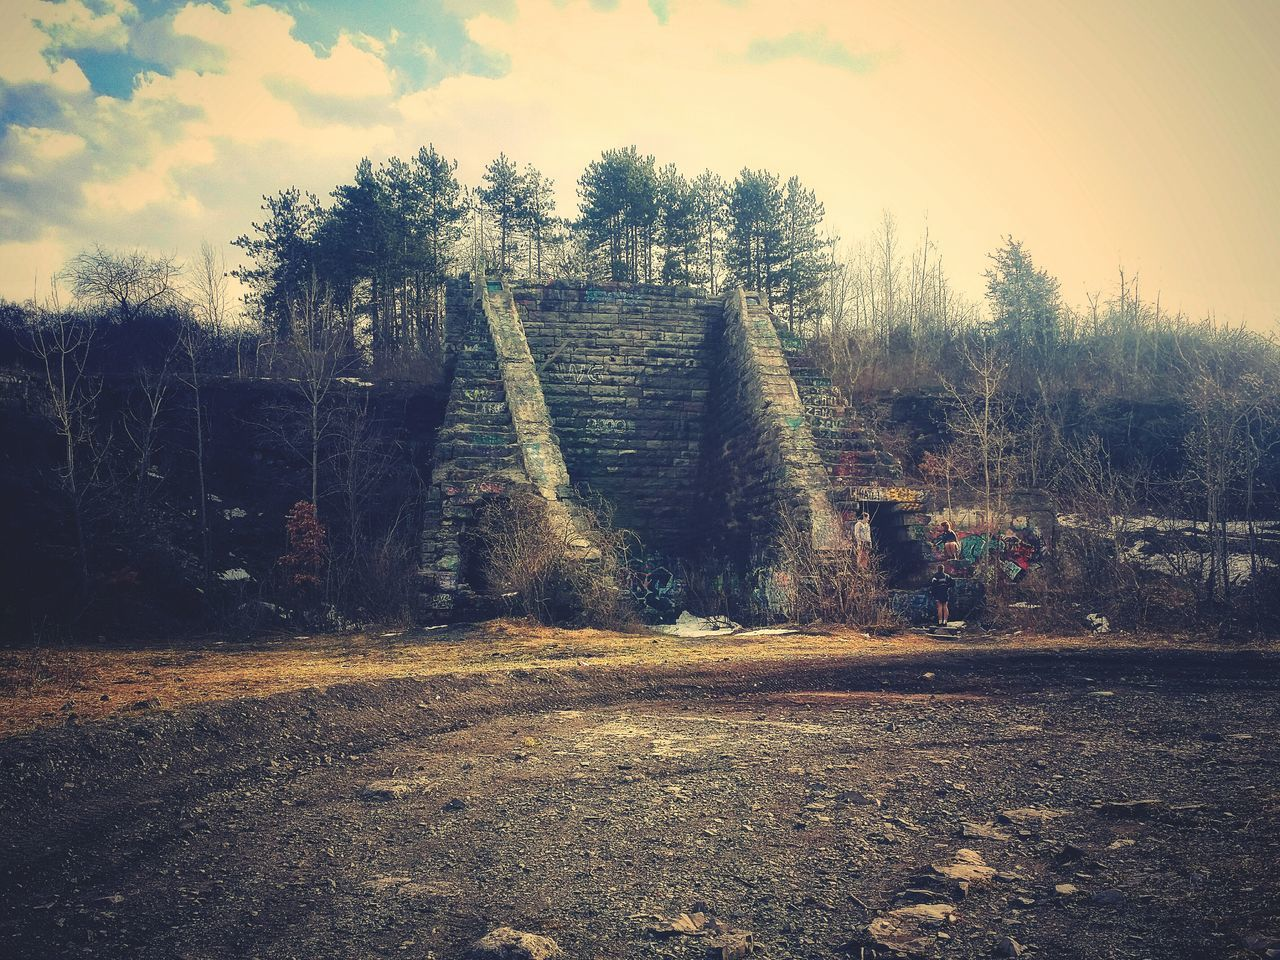 Haunted New York Check This Out Paranormalofcny Creepy Places Split Rock Quarry Old Ruin Abandoned_junkies Rural Exploration EyeEm Best Shots Outdoor Photography